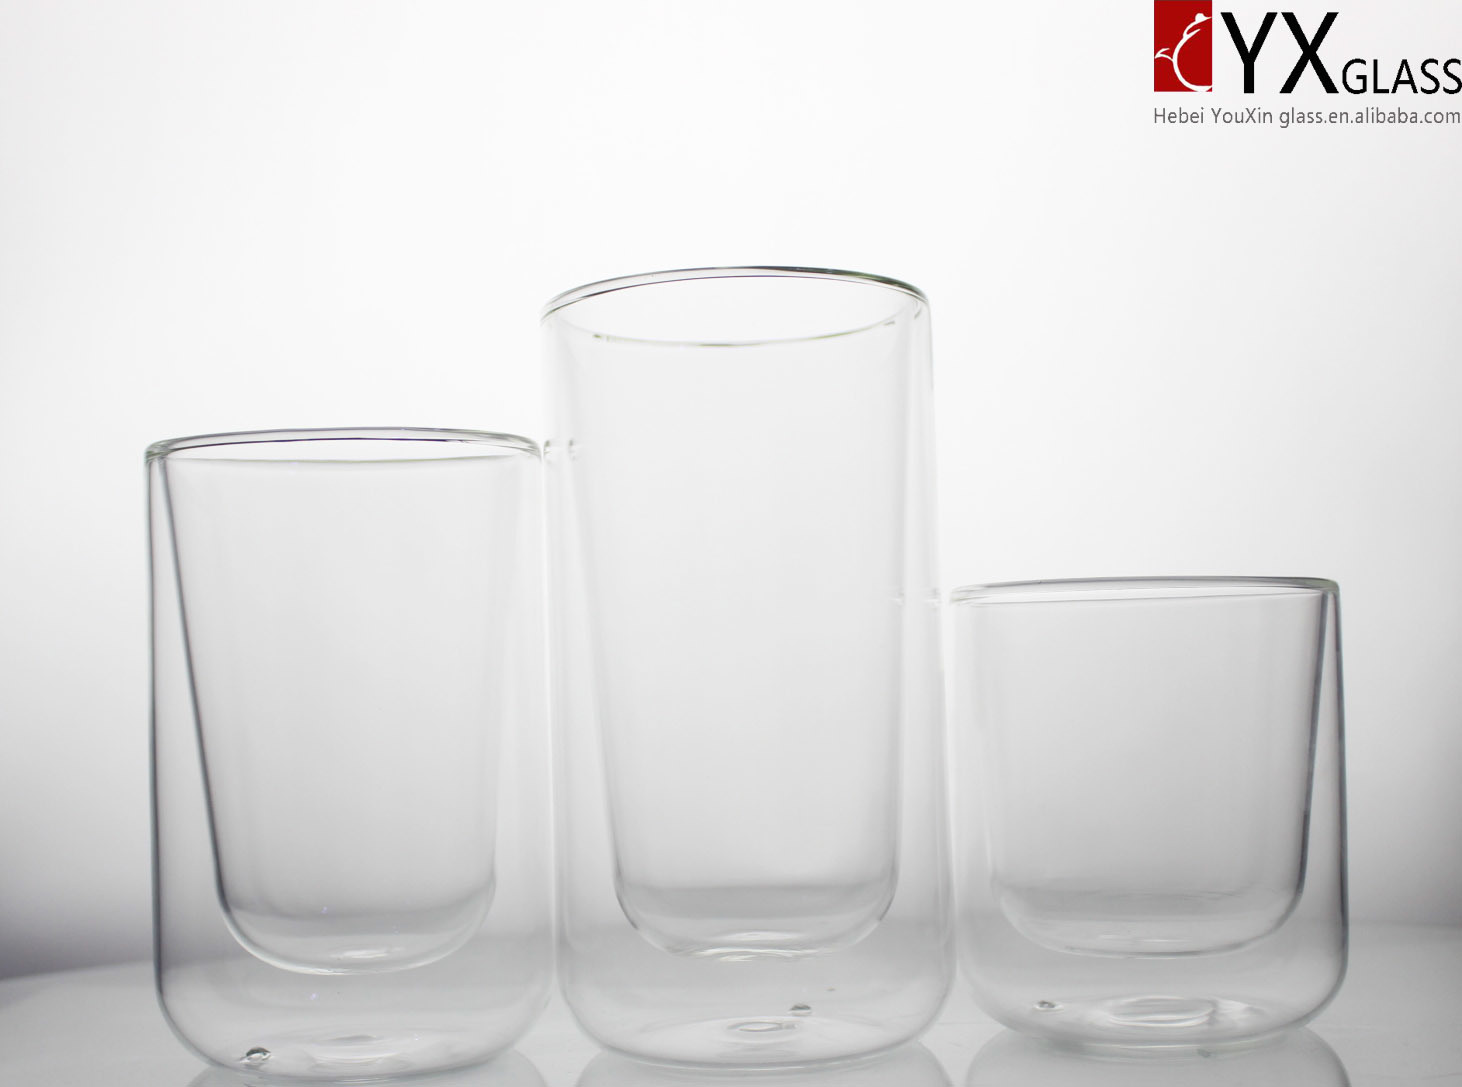 350ml Double Wall Glass Coffee Cup/Double Wall Glass Thermos Coffee Cup/Double Wall Glass Tea Cup